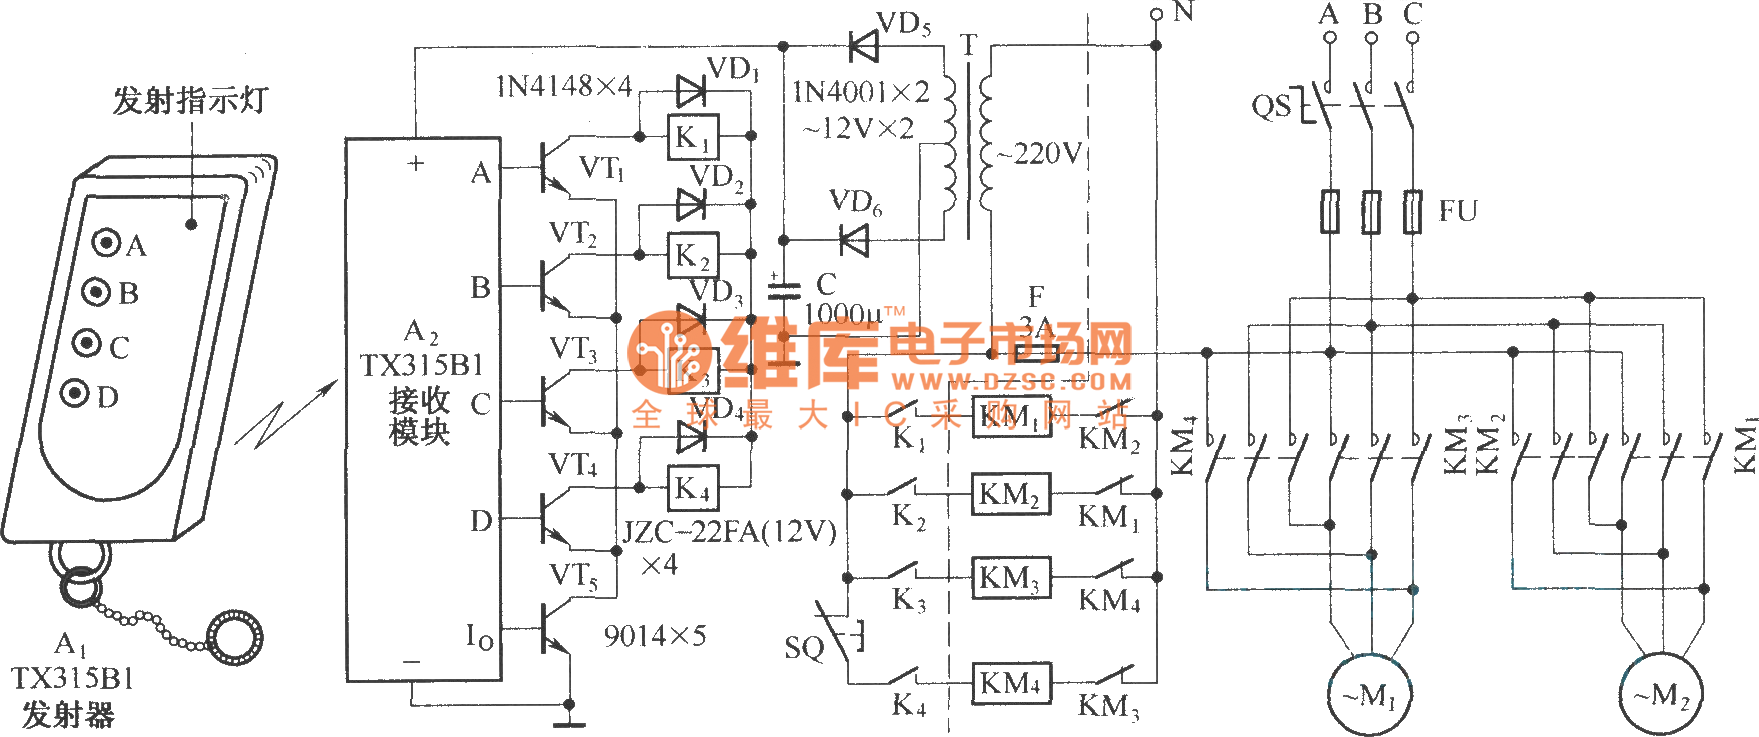 wrg 7963] 12v remote control wiring diagramelectric single girder crane radio remote control(tx315b1) circuit diagram